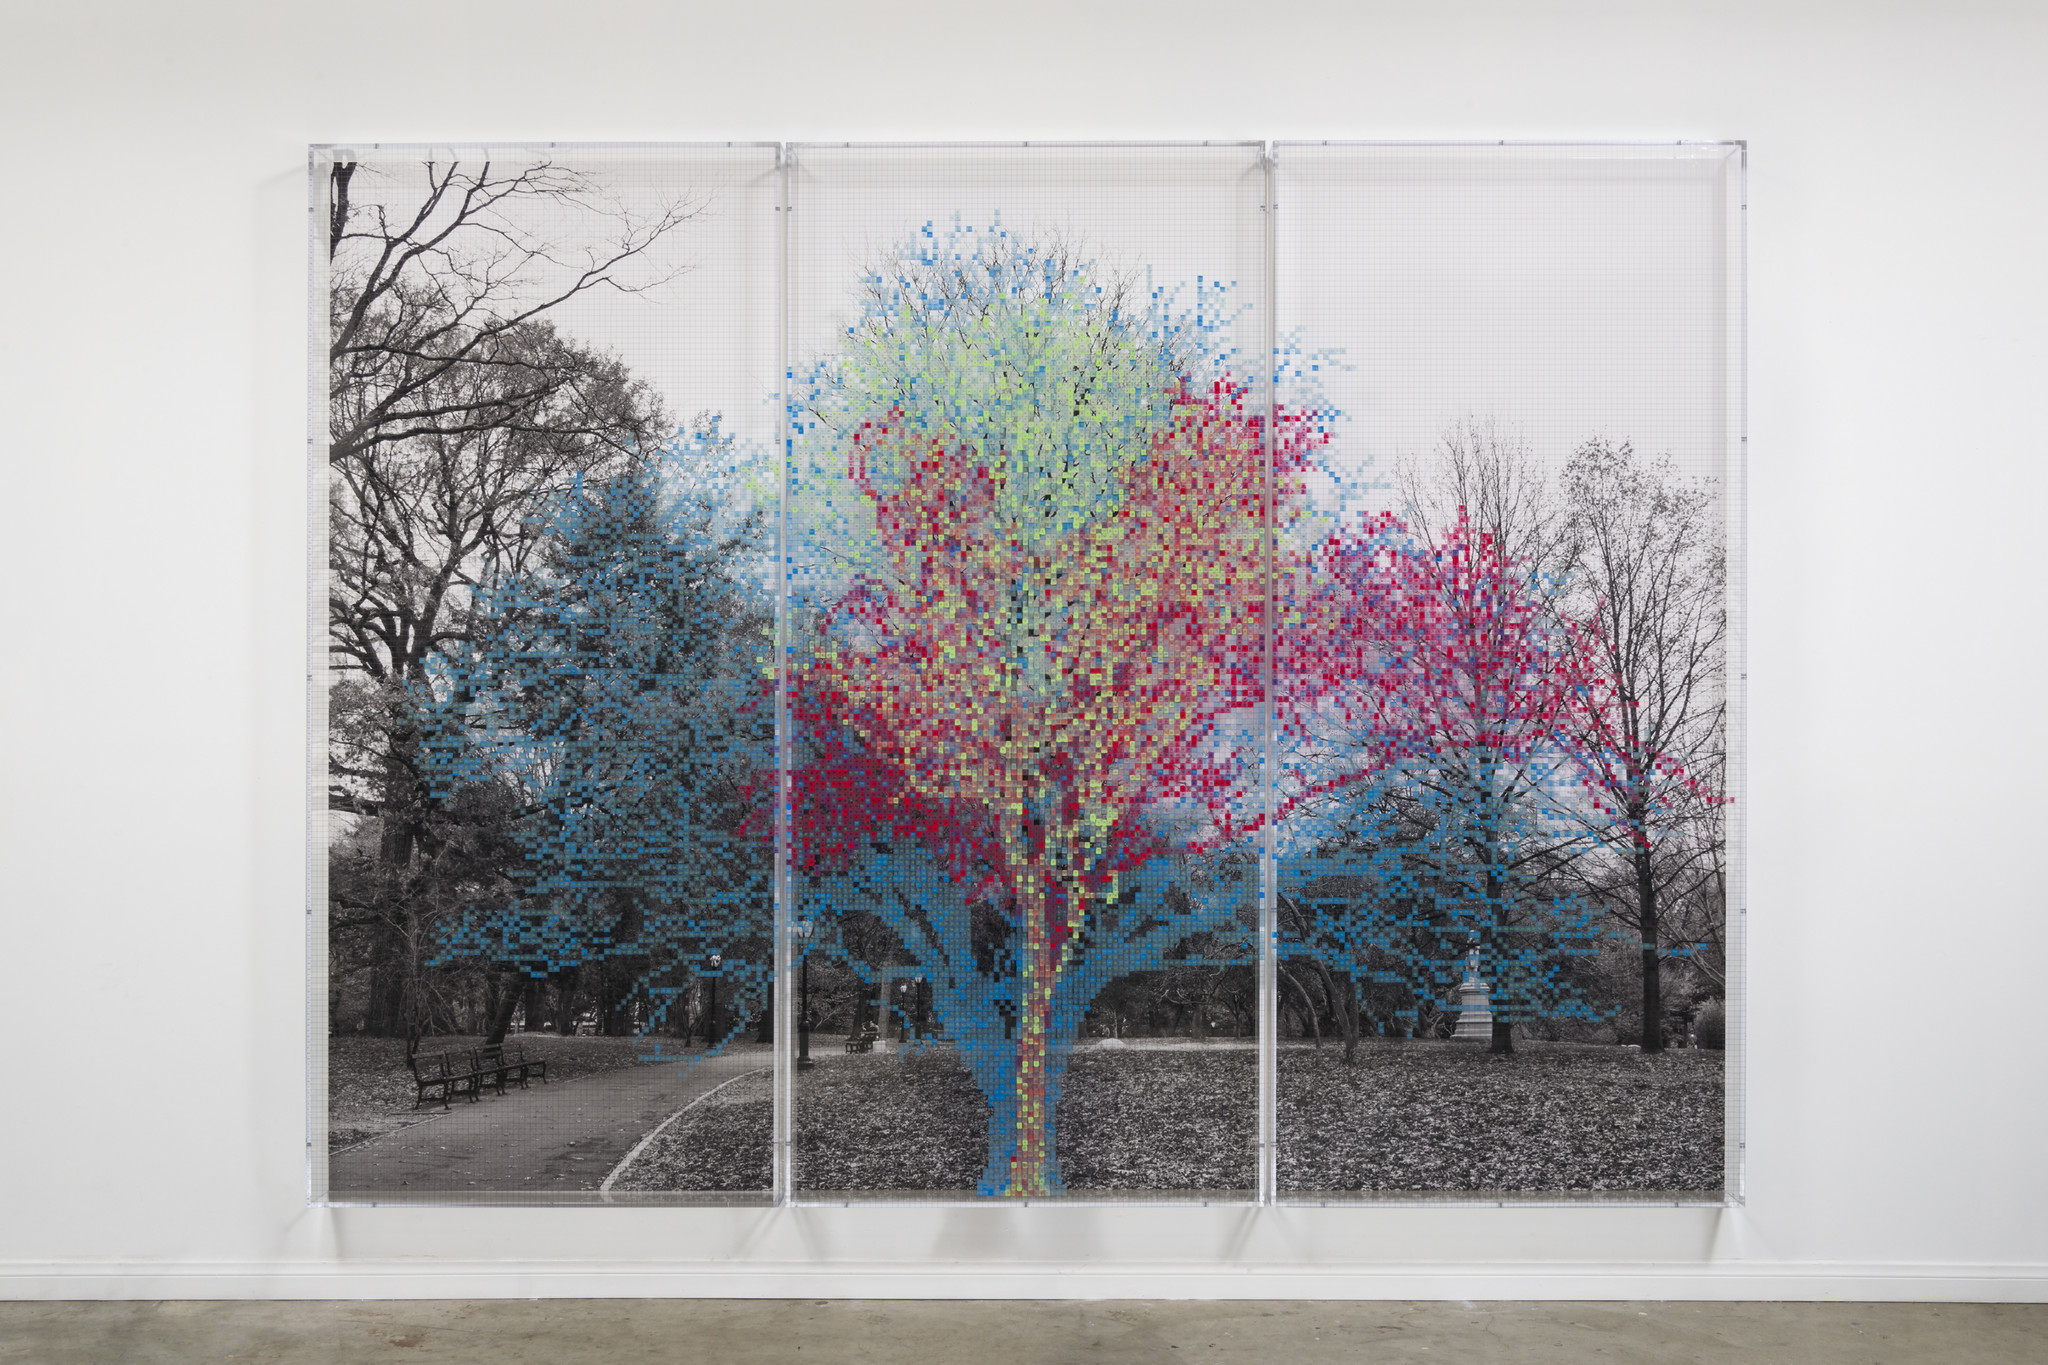 """Numbers and Trees: Central Park Series II: Tree #3, Susanne,"" 2015, by Charles Gaines, at Susanne Vielmetter."